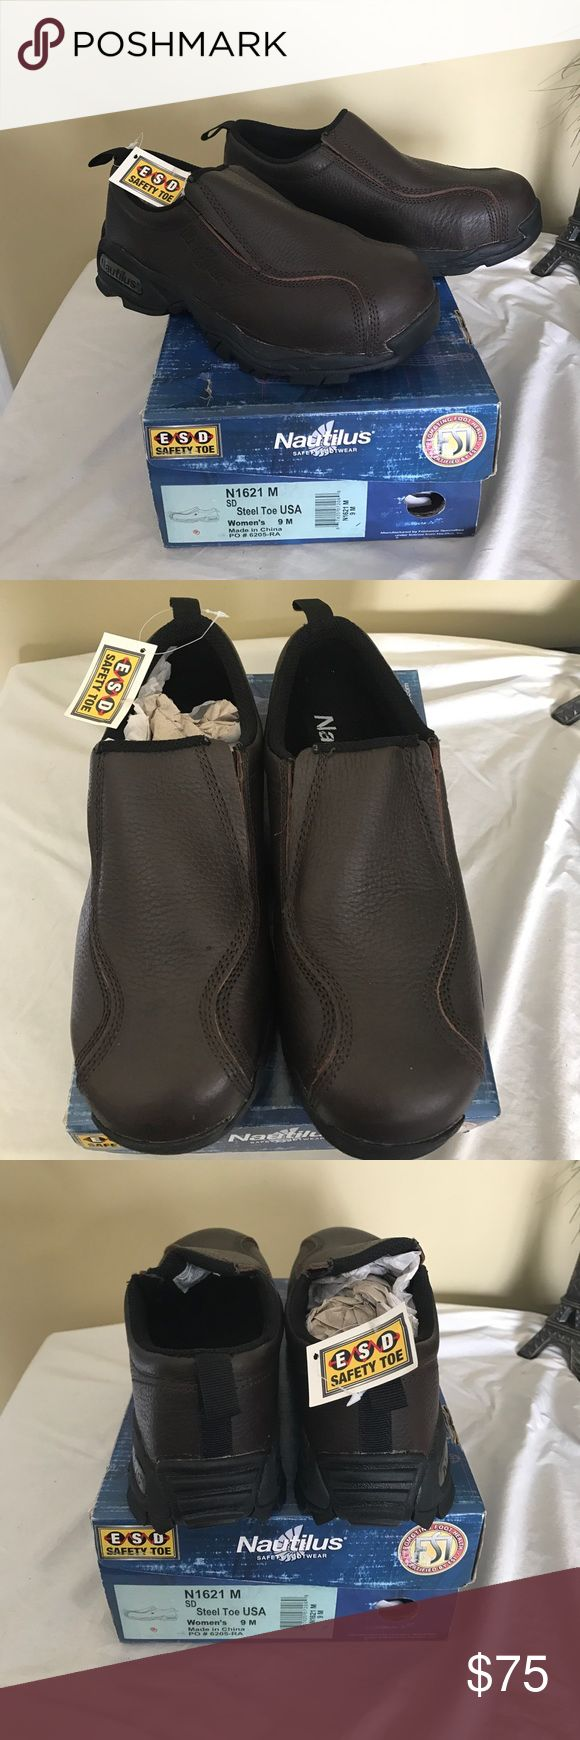 Nautilus steel toe work shoes Brown steel toe work shoes by Nautilus. Brand new. No lace shoes. Nautilus Shoes Flats & Loafers